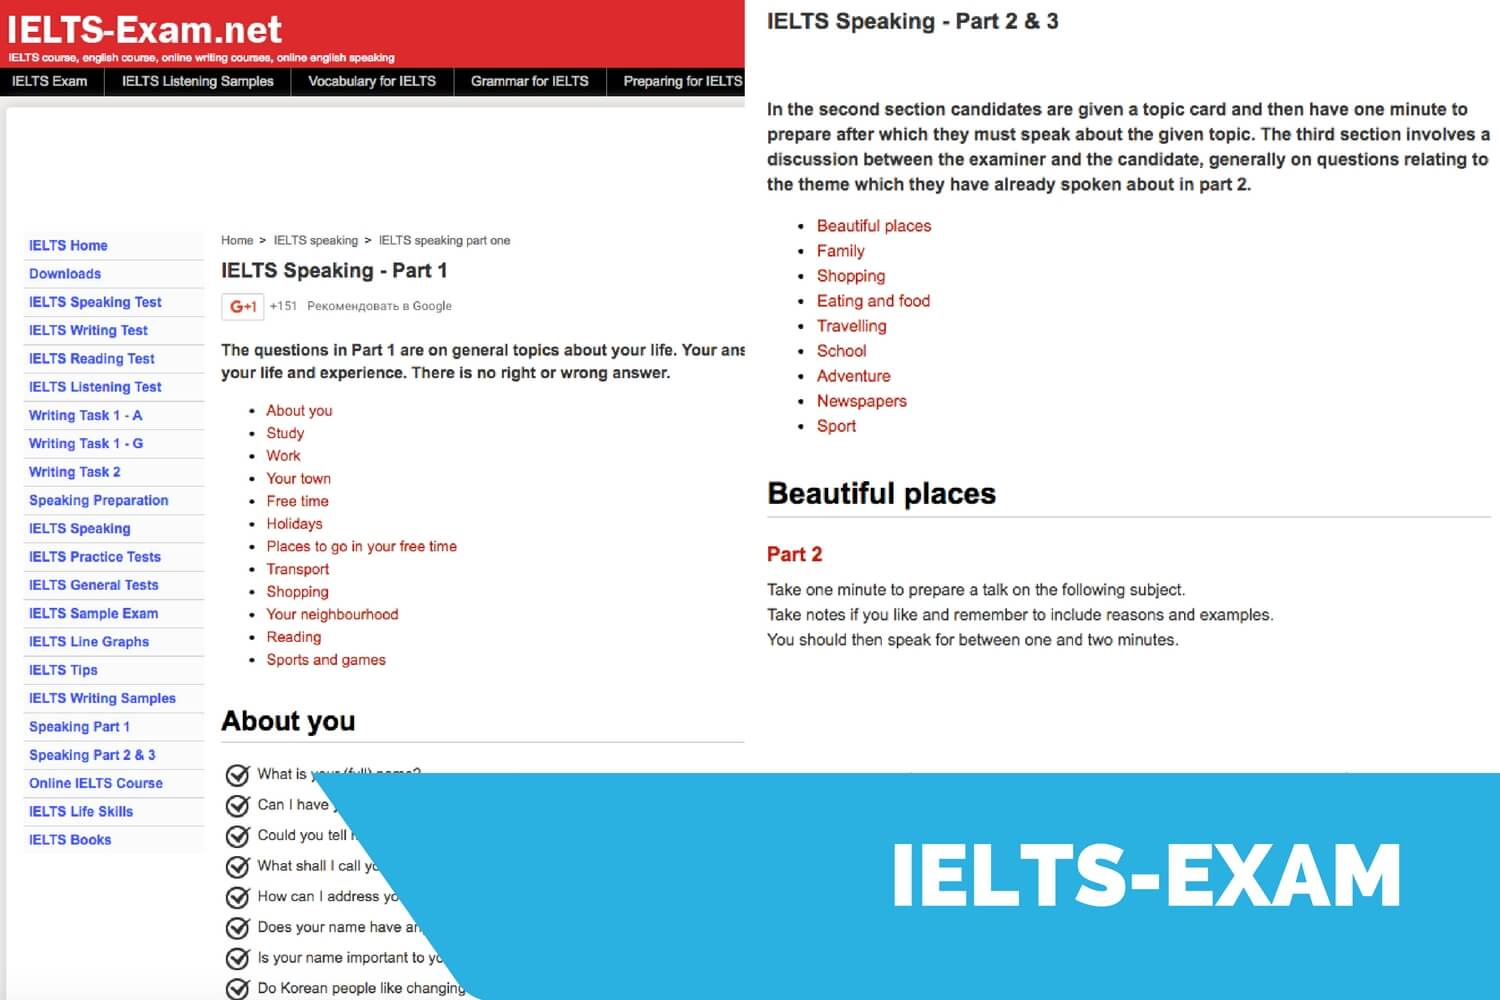 ielts-exam speaking sample questions